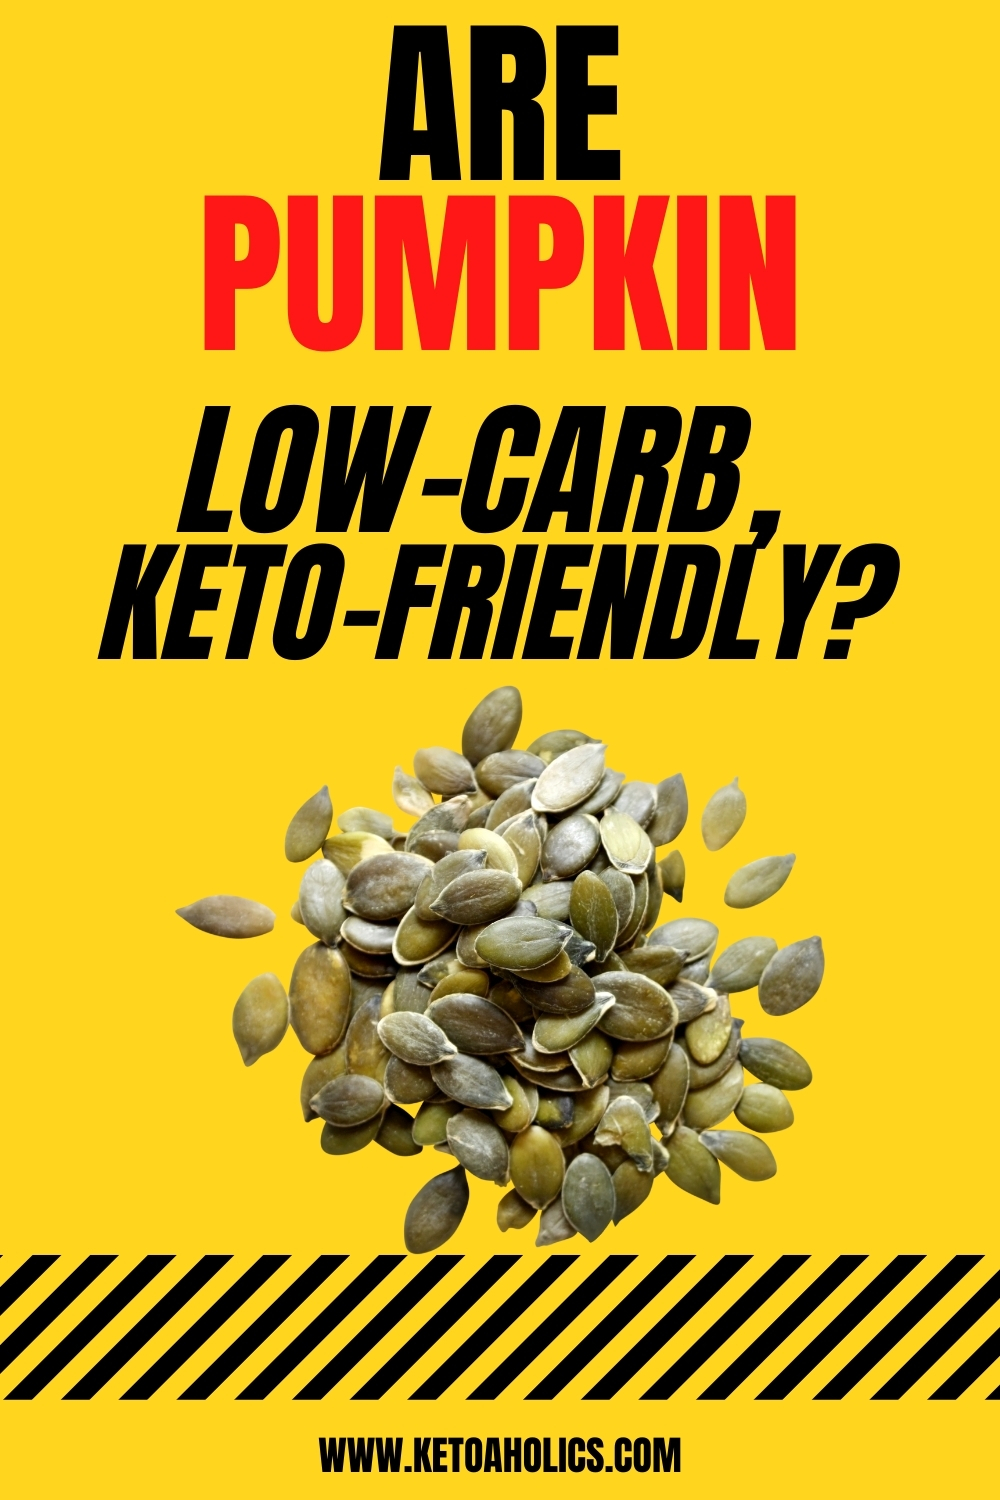 image of Nuts and seeds low carb Keto friendly